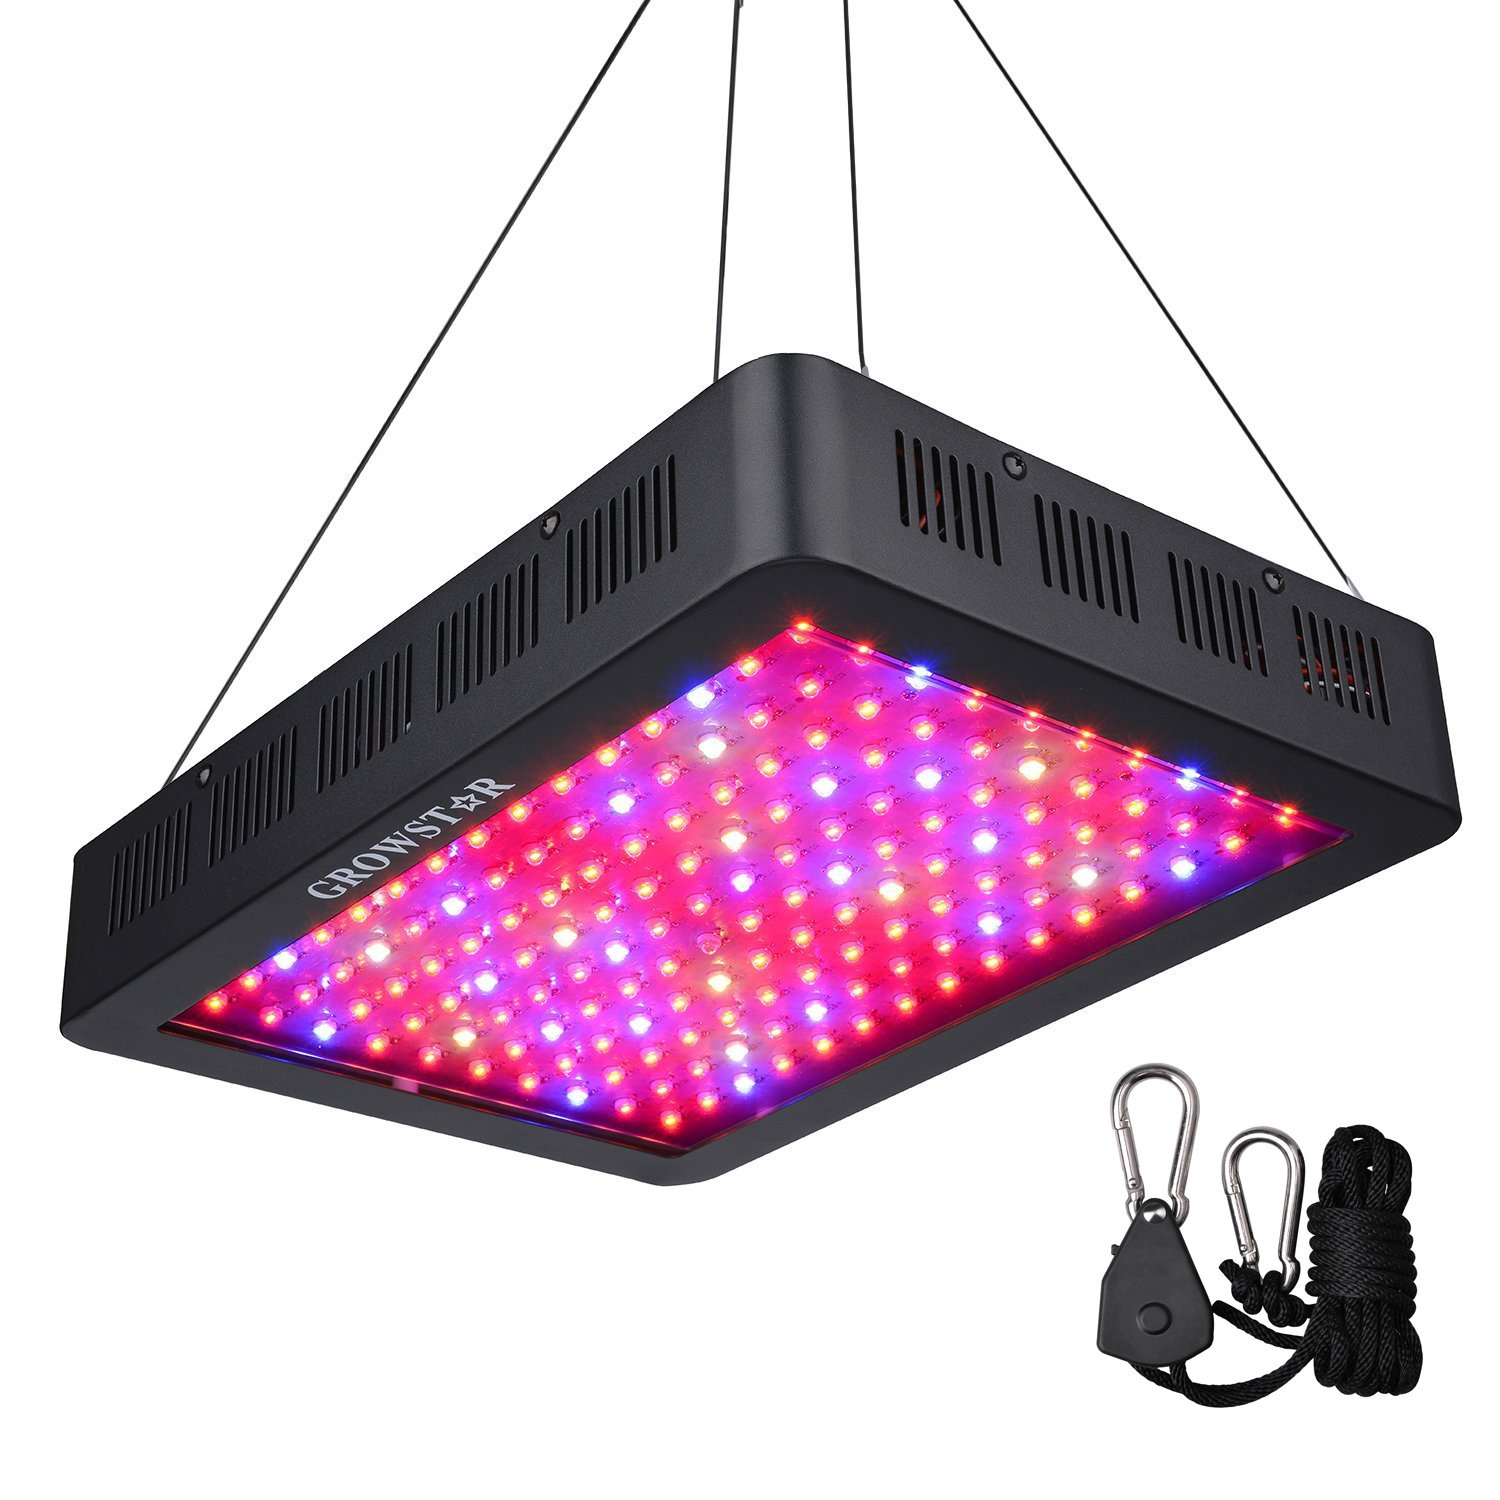 1500W LED Grow Light, Growstar Double Chips LED Grow Lamp Full Spectrum for Hydroponic Indoor Plants Flower and Veg with UV IR Daisy Chain (12-Band) by Growstar